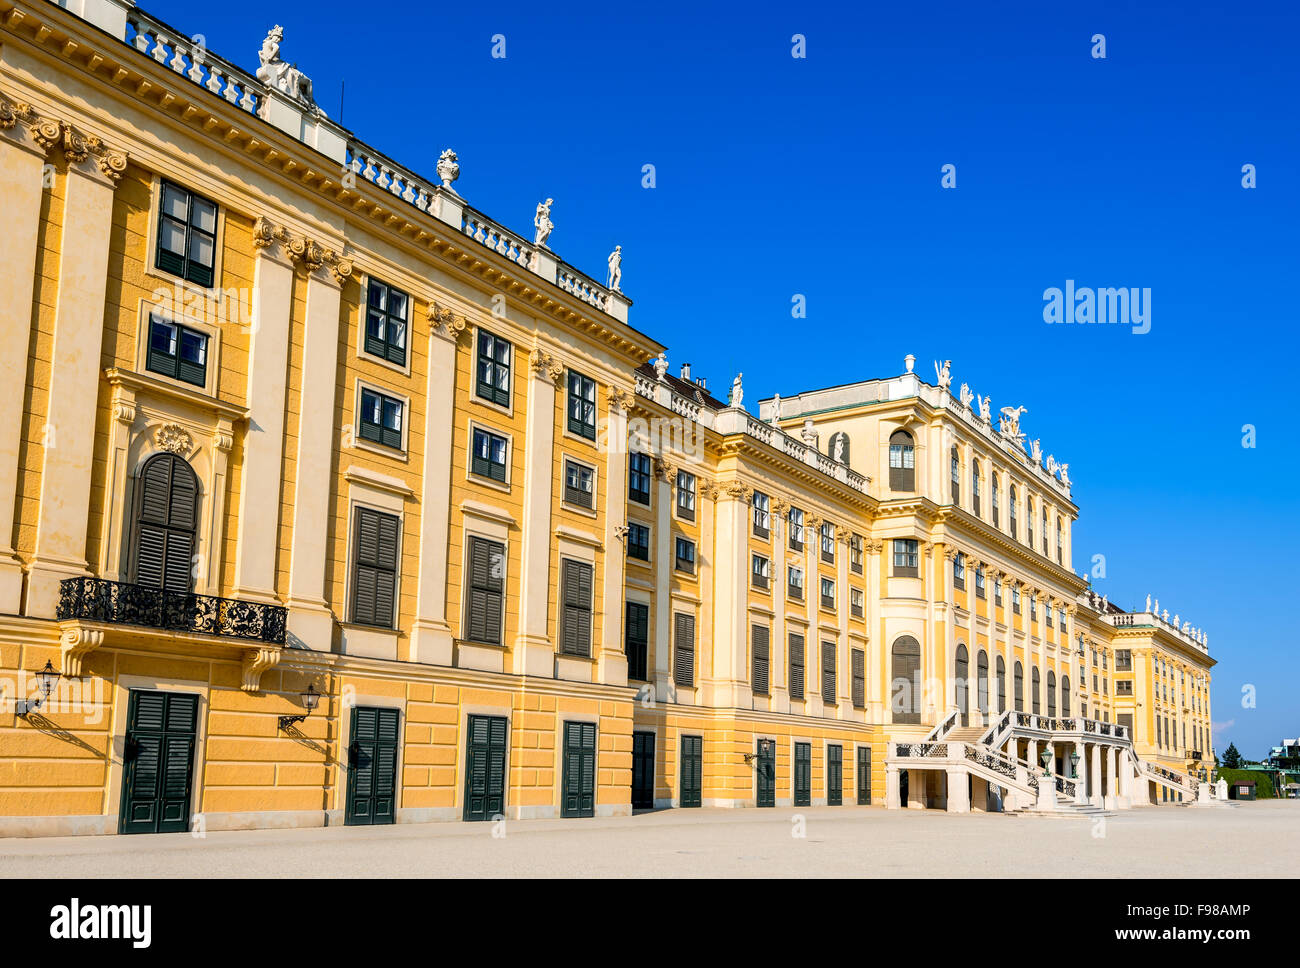 Austria. Schonbrunn Palace in Vienna. It's a former imperial 1,441-room Rococo summer residence in modern Wien. - Stock Image